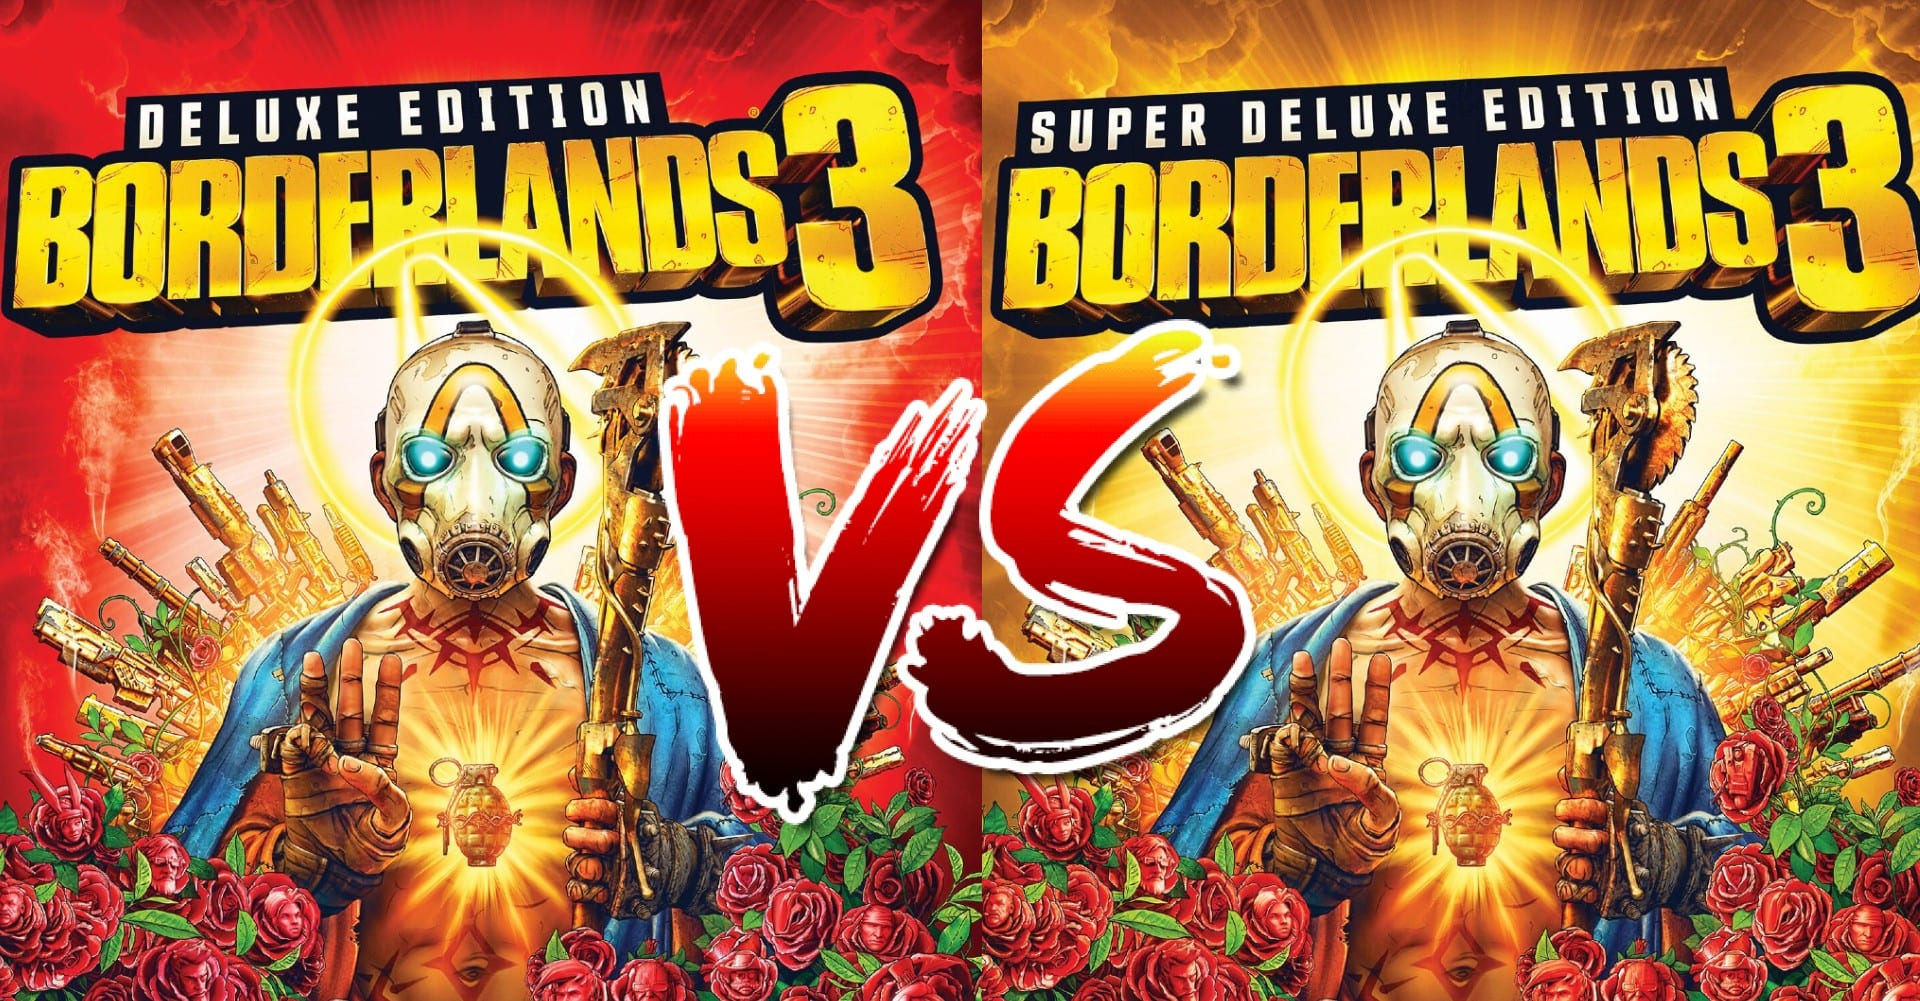 Fortnite Super Deluxe Worth It Borderlands 3 Super Deluxe Deluxe Editions How Much They Cost What S In Them More